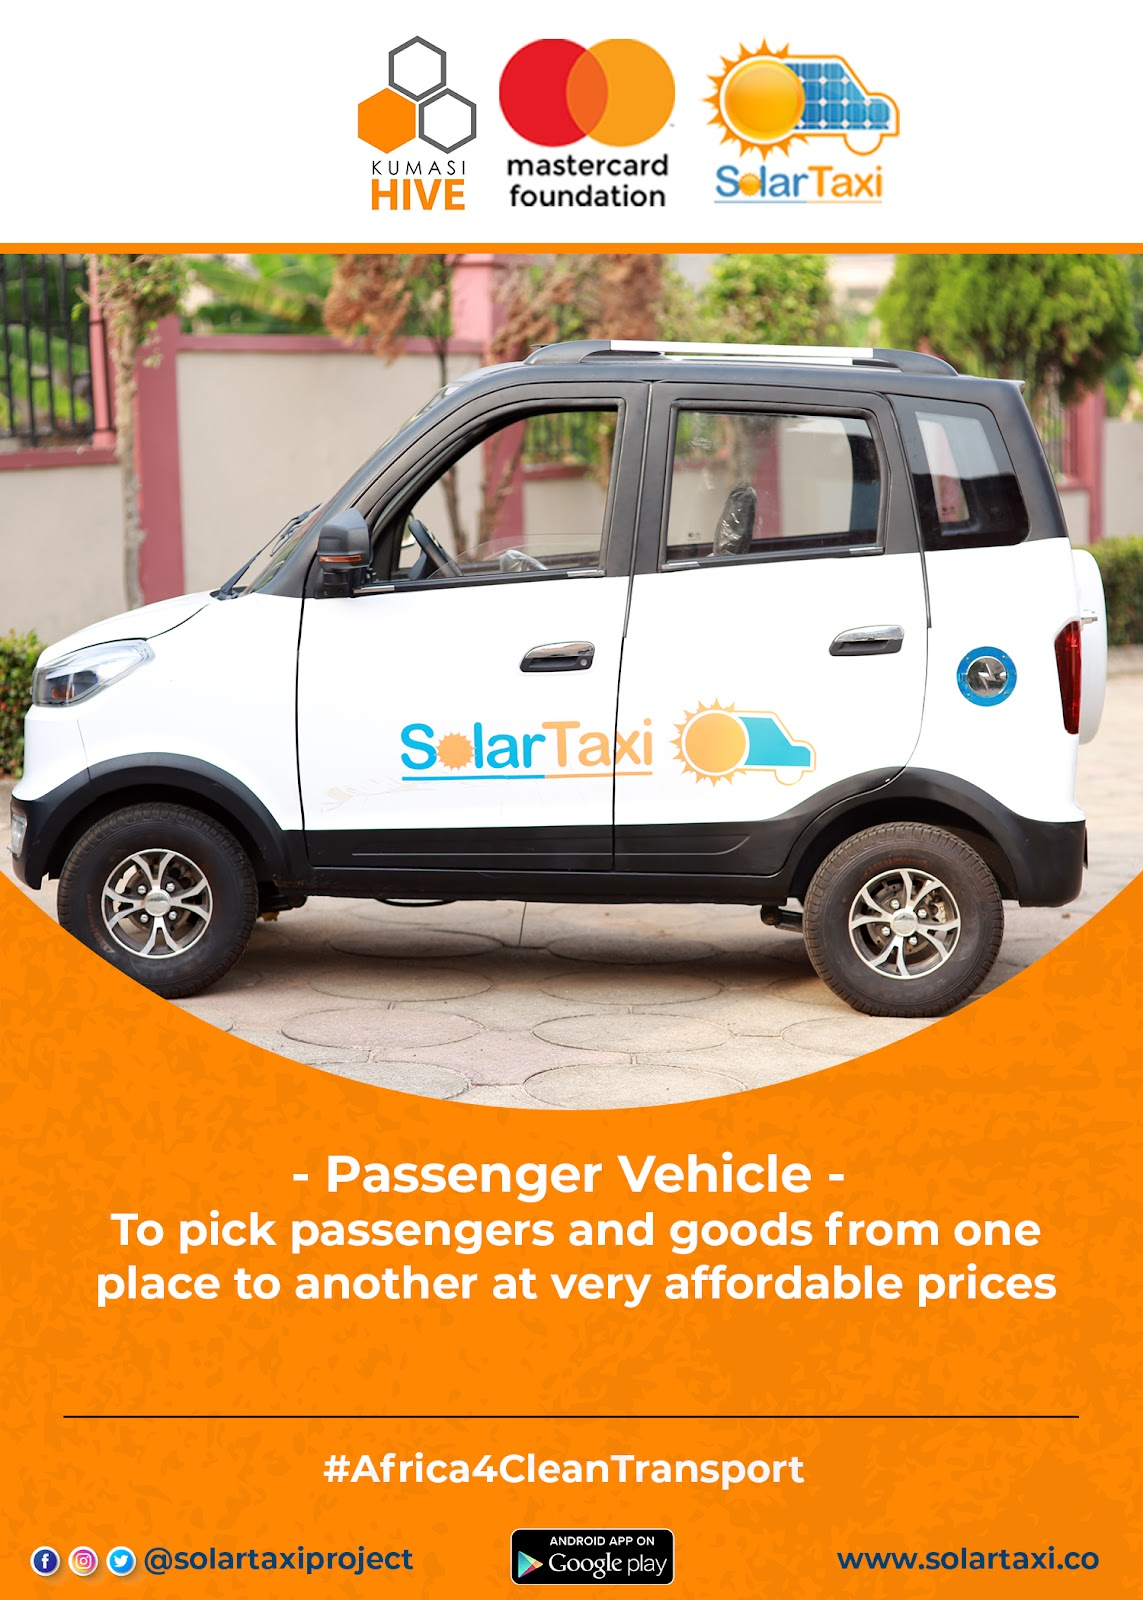 Kumasi Hive and Mastercard Foundation Passenger Vehicle image for SolarTaxi on gharage